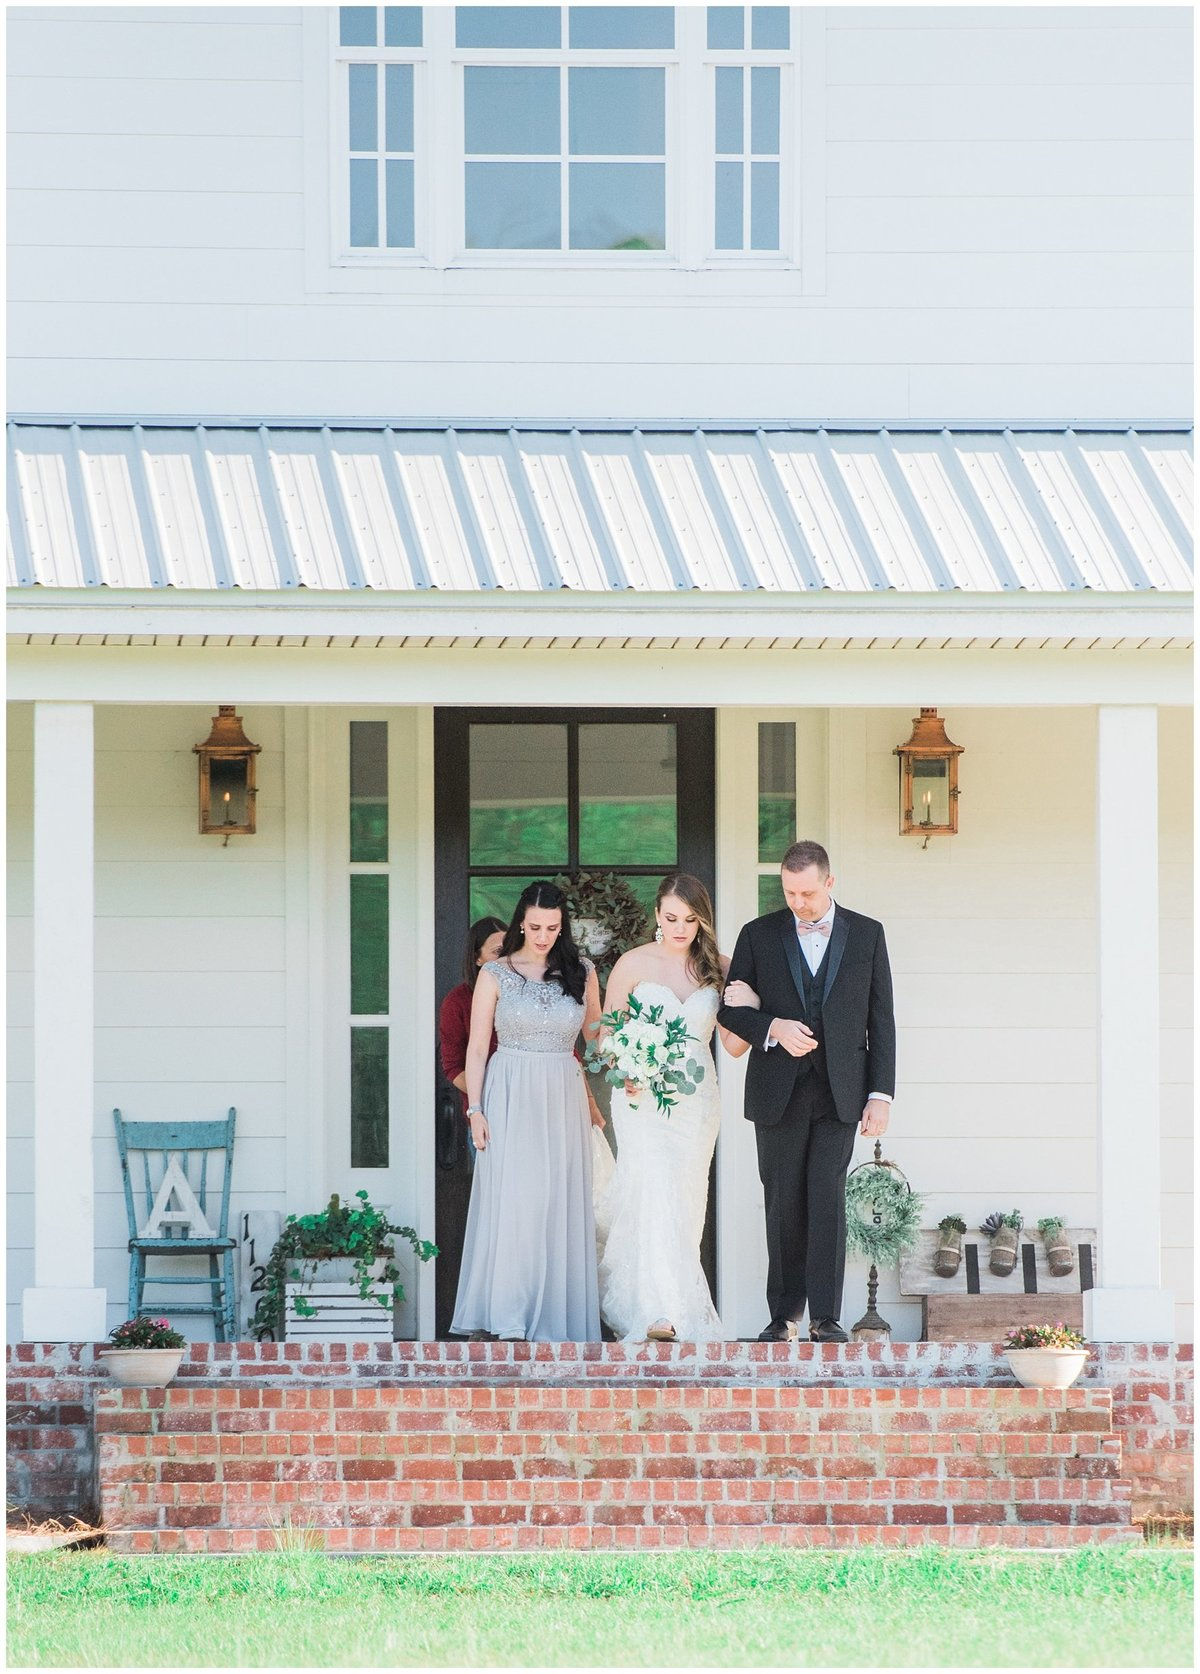 Jesse-Carleton-Panama City Florida-Wedding-Photographer-Barn Weddings-Session-Photography-Rosie Creek Farms-destination photographer_0218